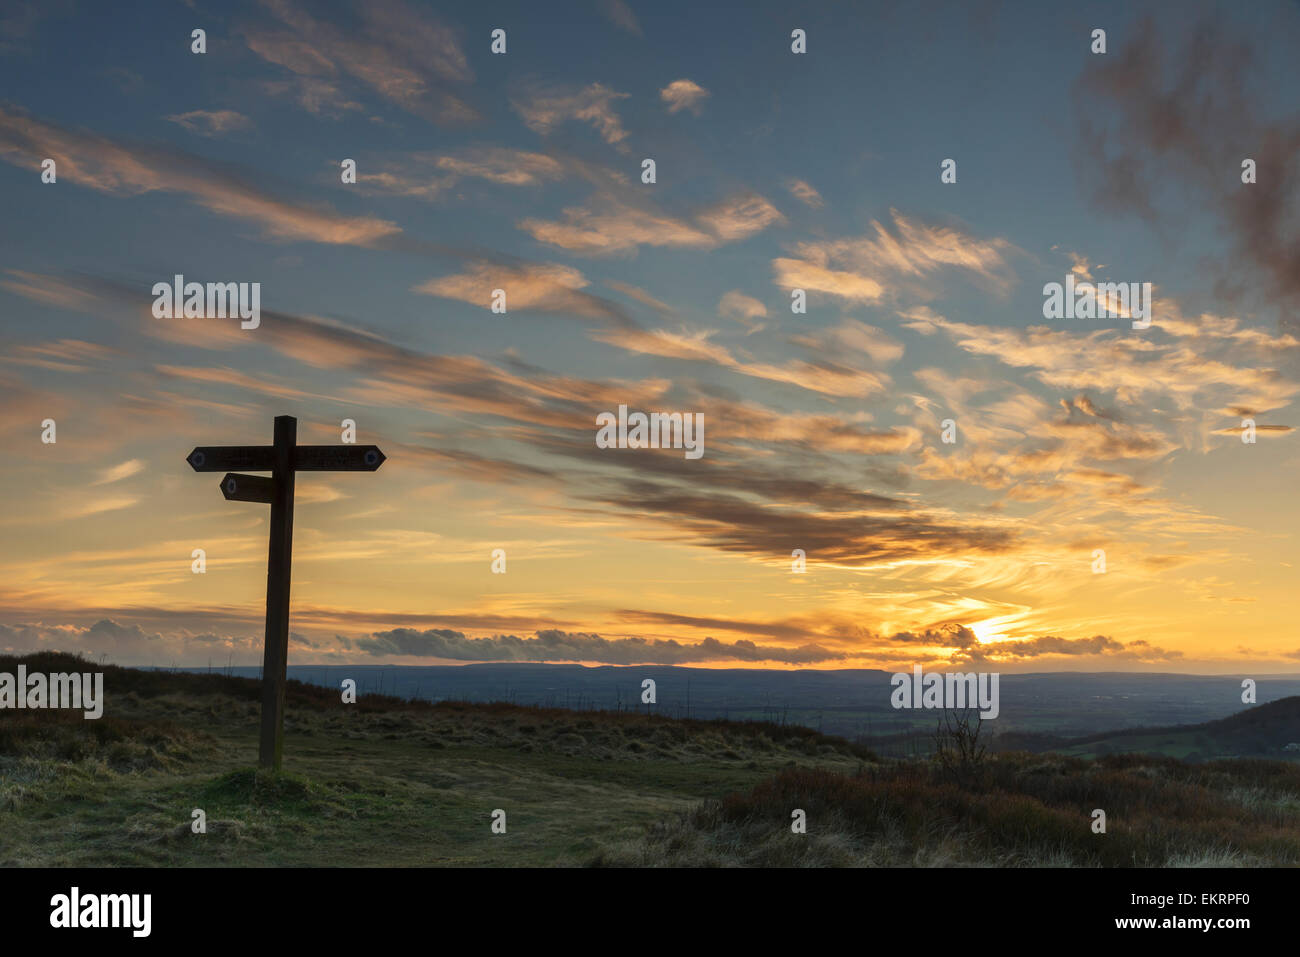 A signpost at sunset along The Cleveland Way in North Yorkshire, England. - Stock Image